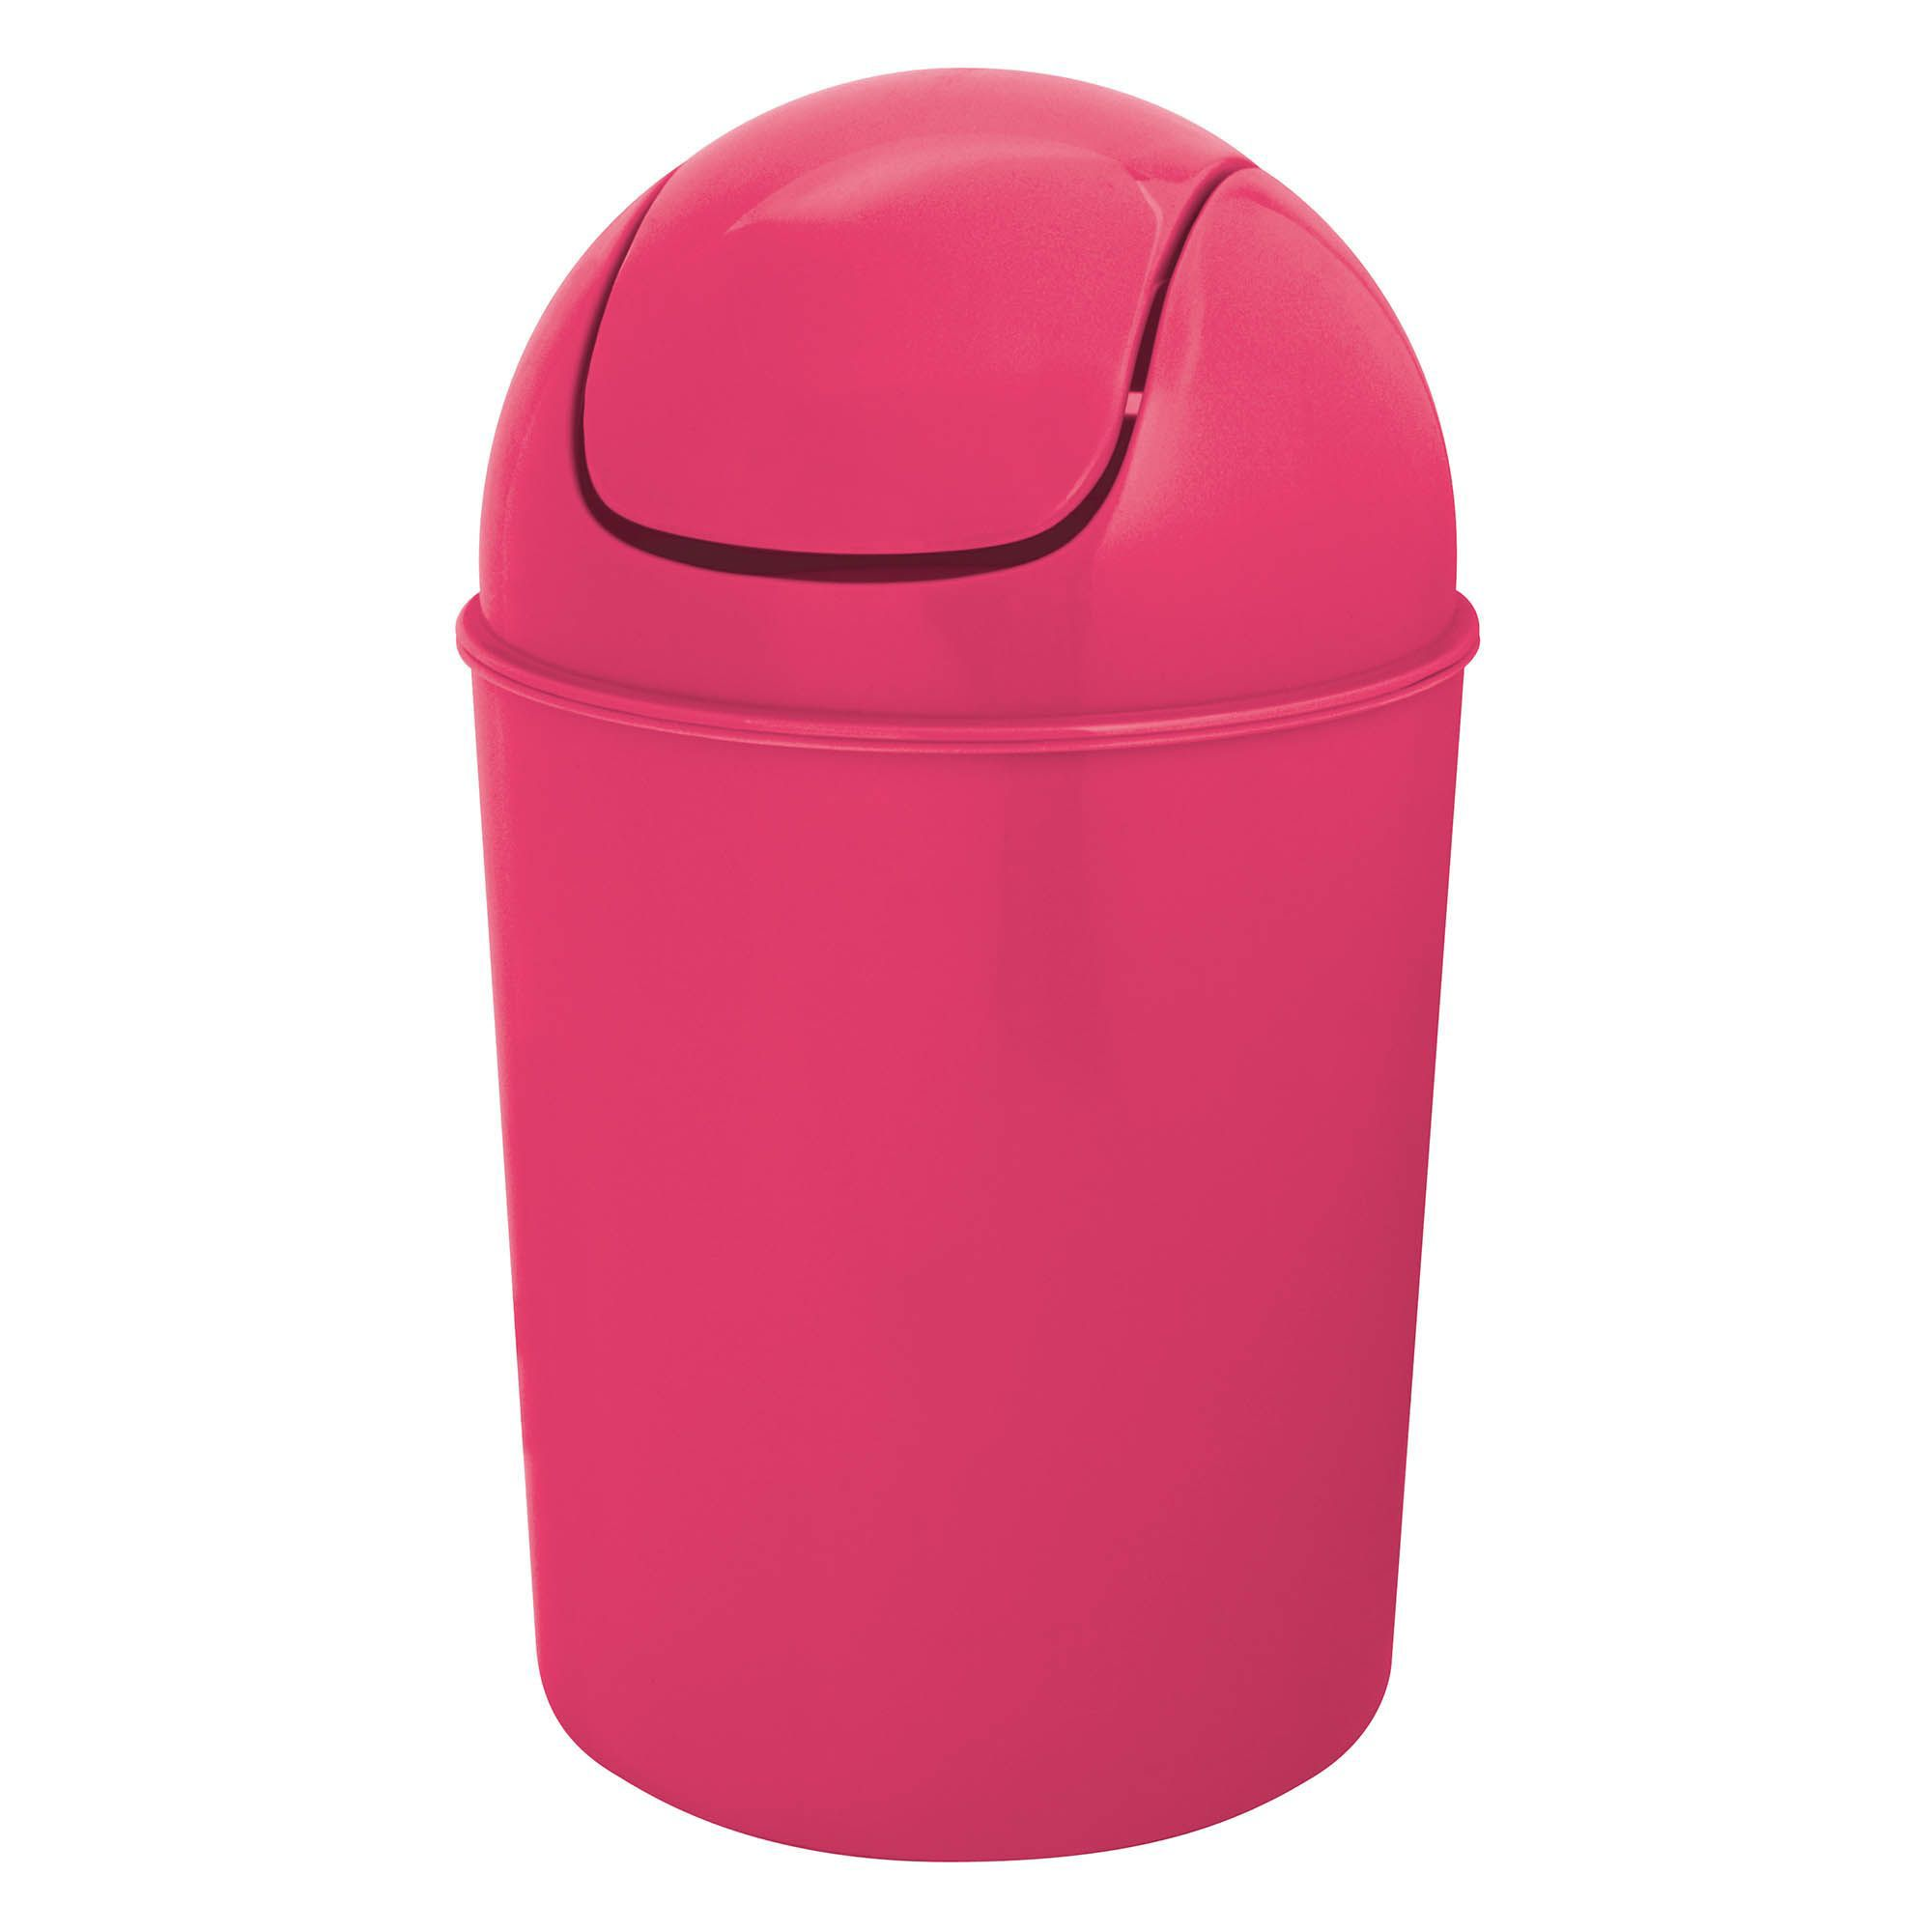 Flip top pink plastic bathroom bin 5l departments diy for Pink bathroom bin